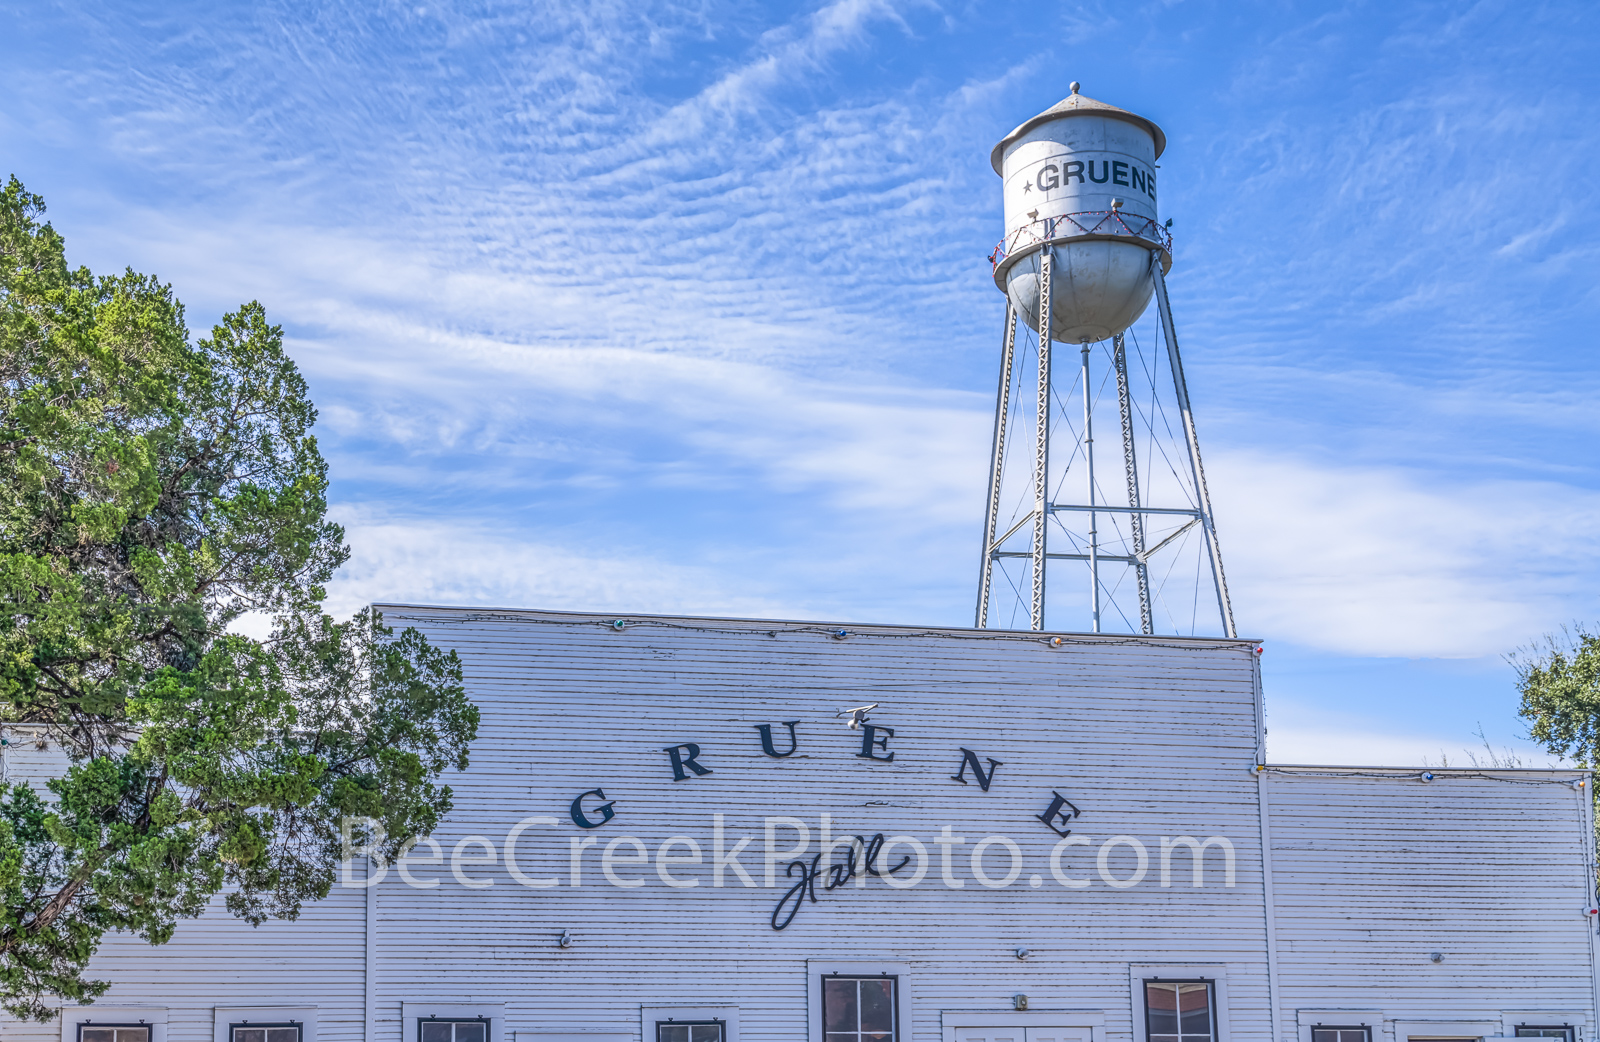 Gruene Hall, Gruene Texas, dance hall, saloon, town, community, Earnest Gruene, german, german town, Texas, texas hill country, visit, National Register of Historic Places, tourist, , photo